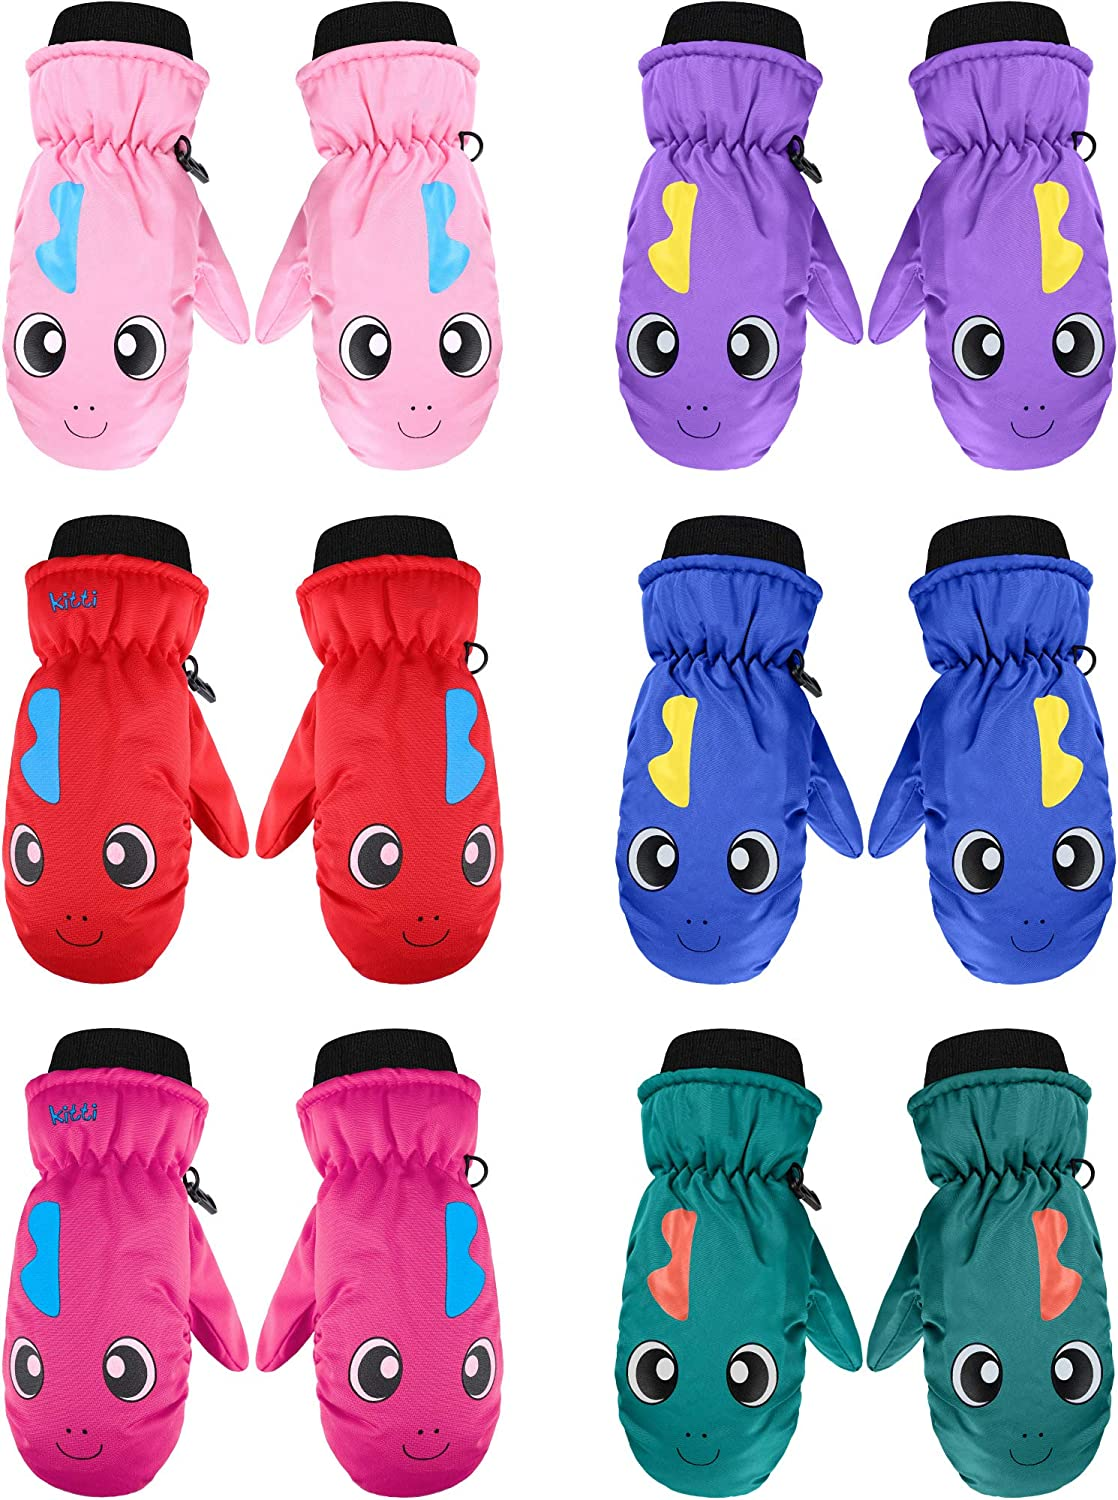 6 Pairs Kids Limited time cheap sale Winter Snow Mittens Unis Waterproof Warm Ski Ranking TOP9 Gloves